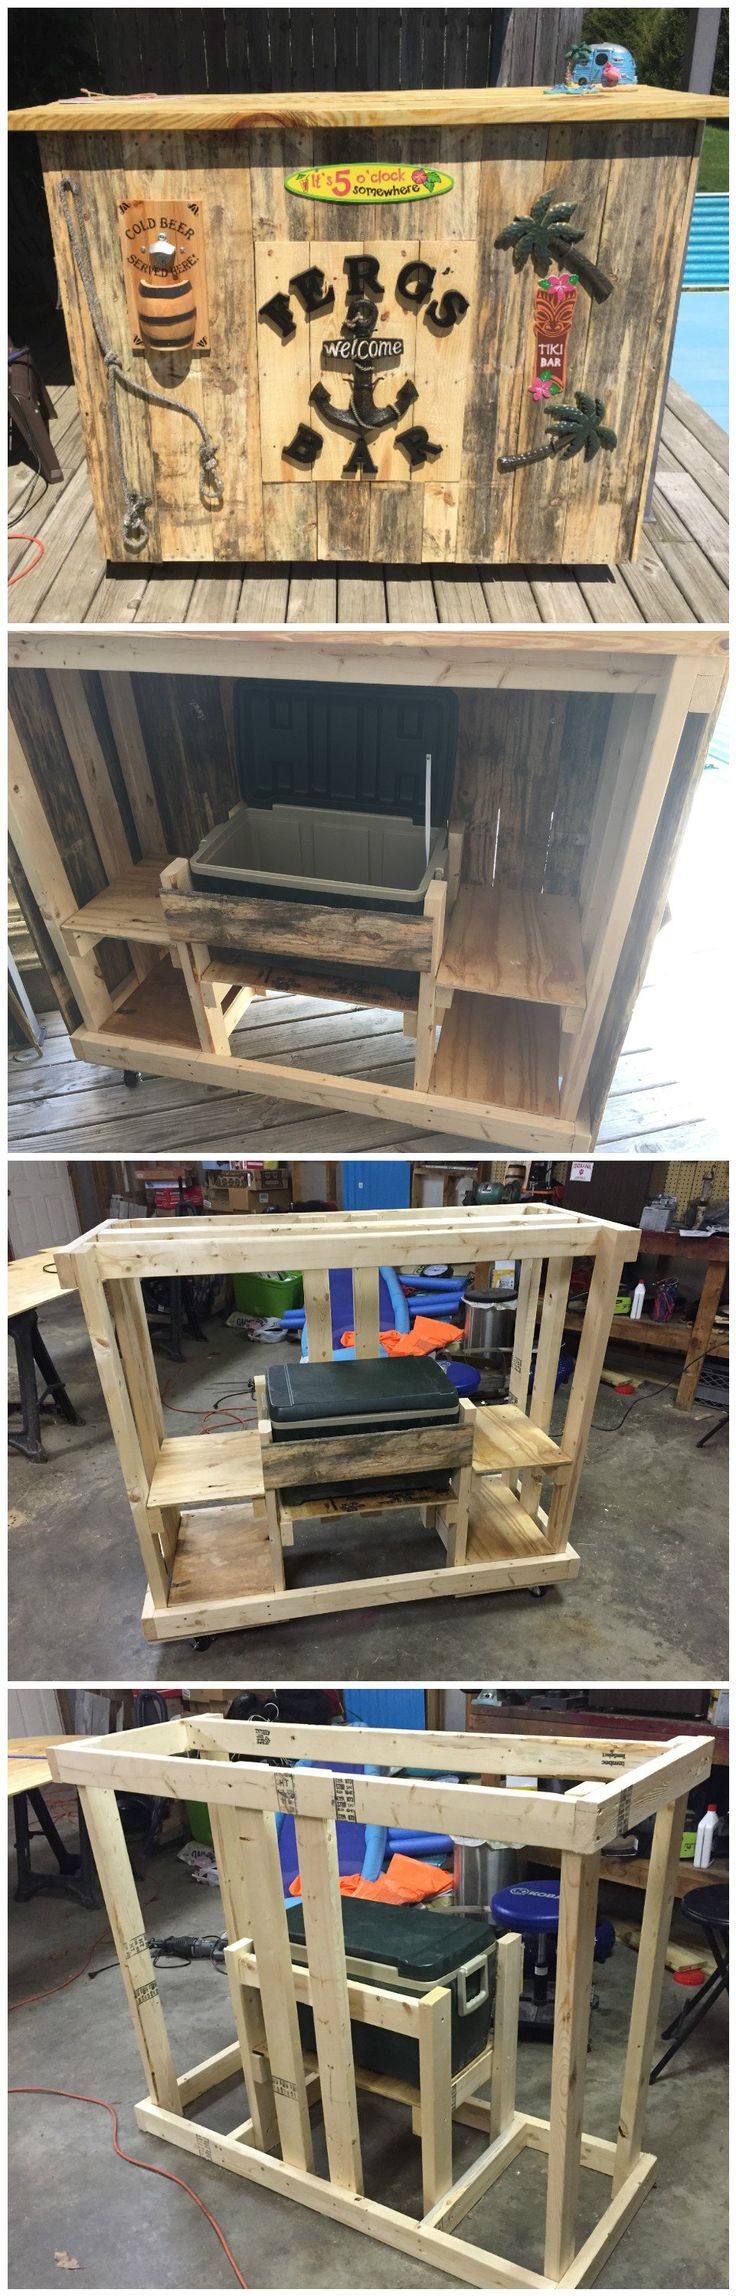 #Garden, #PalletBar, #Pool, #RecyclingWoodPallets I wanted to create a nice looking bar to store my cooler in for summer days by our pool. The hardest part was figuring out the framing to include the platform to fit the cooler on. All together this took me about 17 hours. I used four relatively